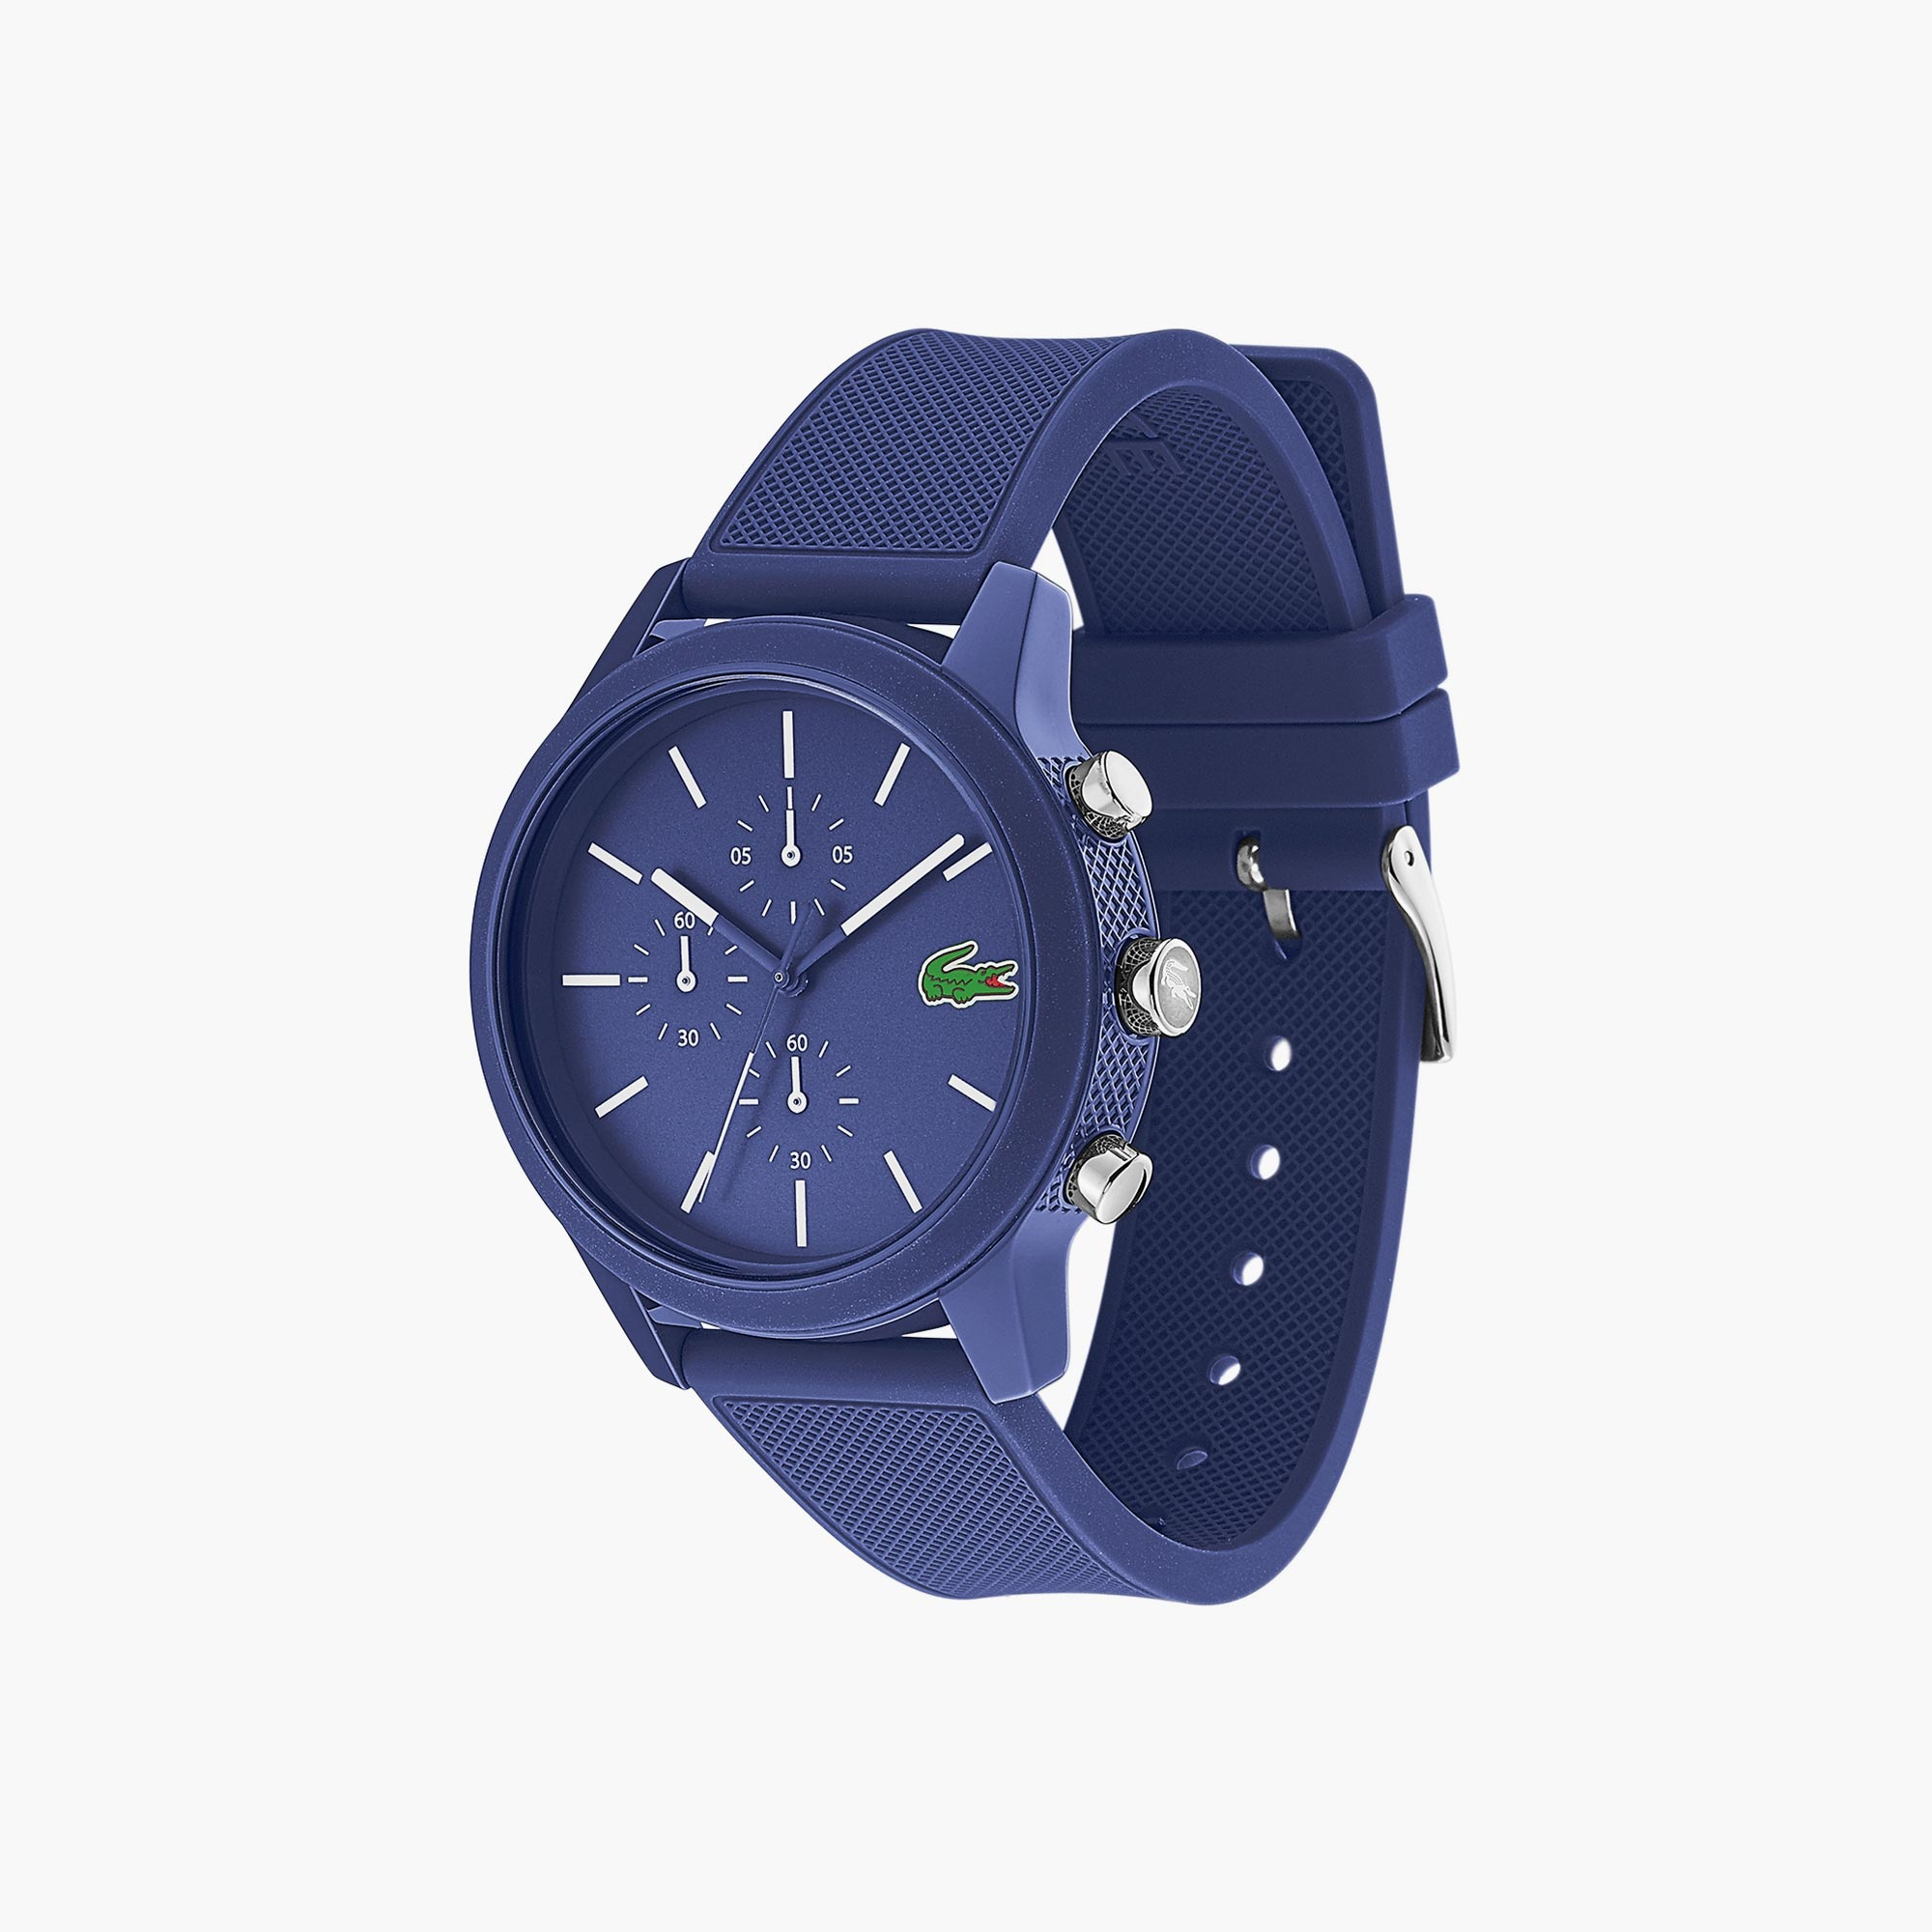 라코스테 크로노그래프 시계 Mens Lacoste 12.12 Chronograph Watch with Blue Silicone Strap,Blue